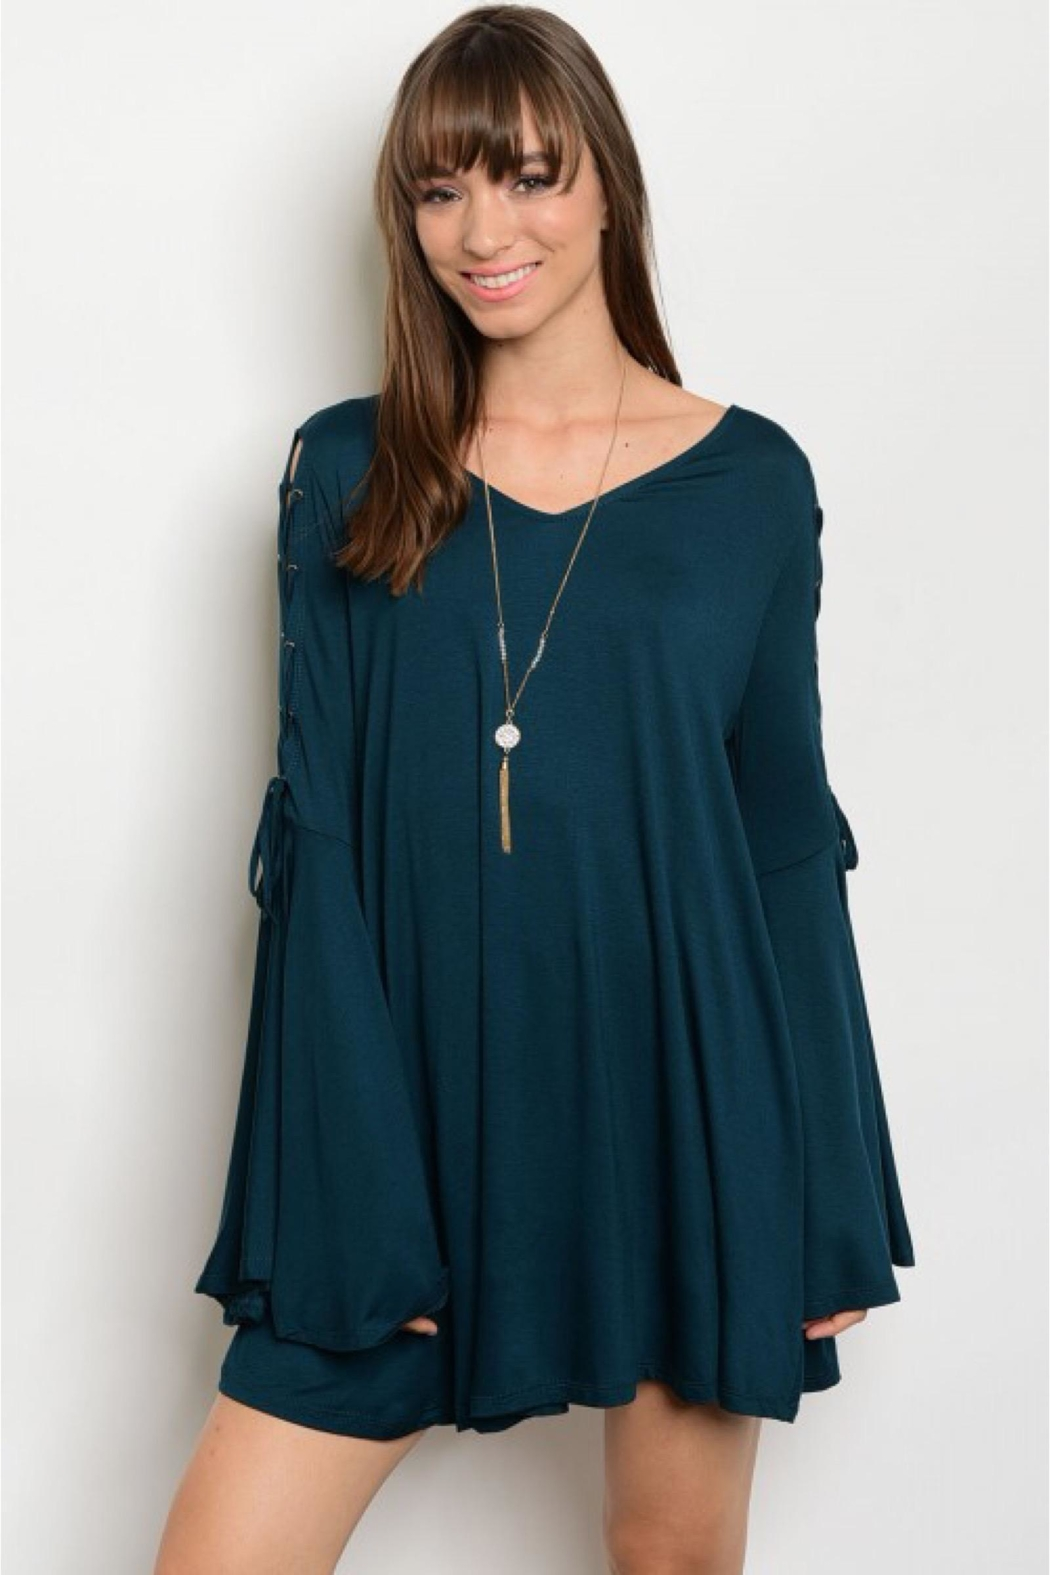 People Outfitter Dark Green Bell Sleeve Tunic- Dress - Main Image